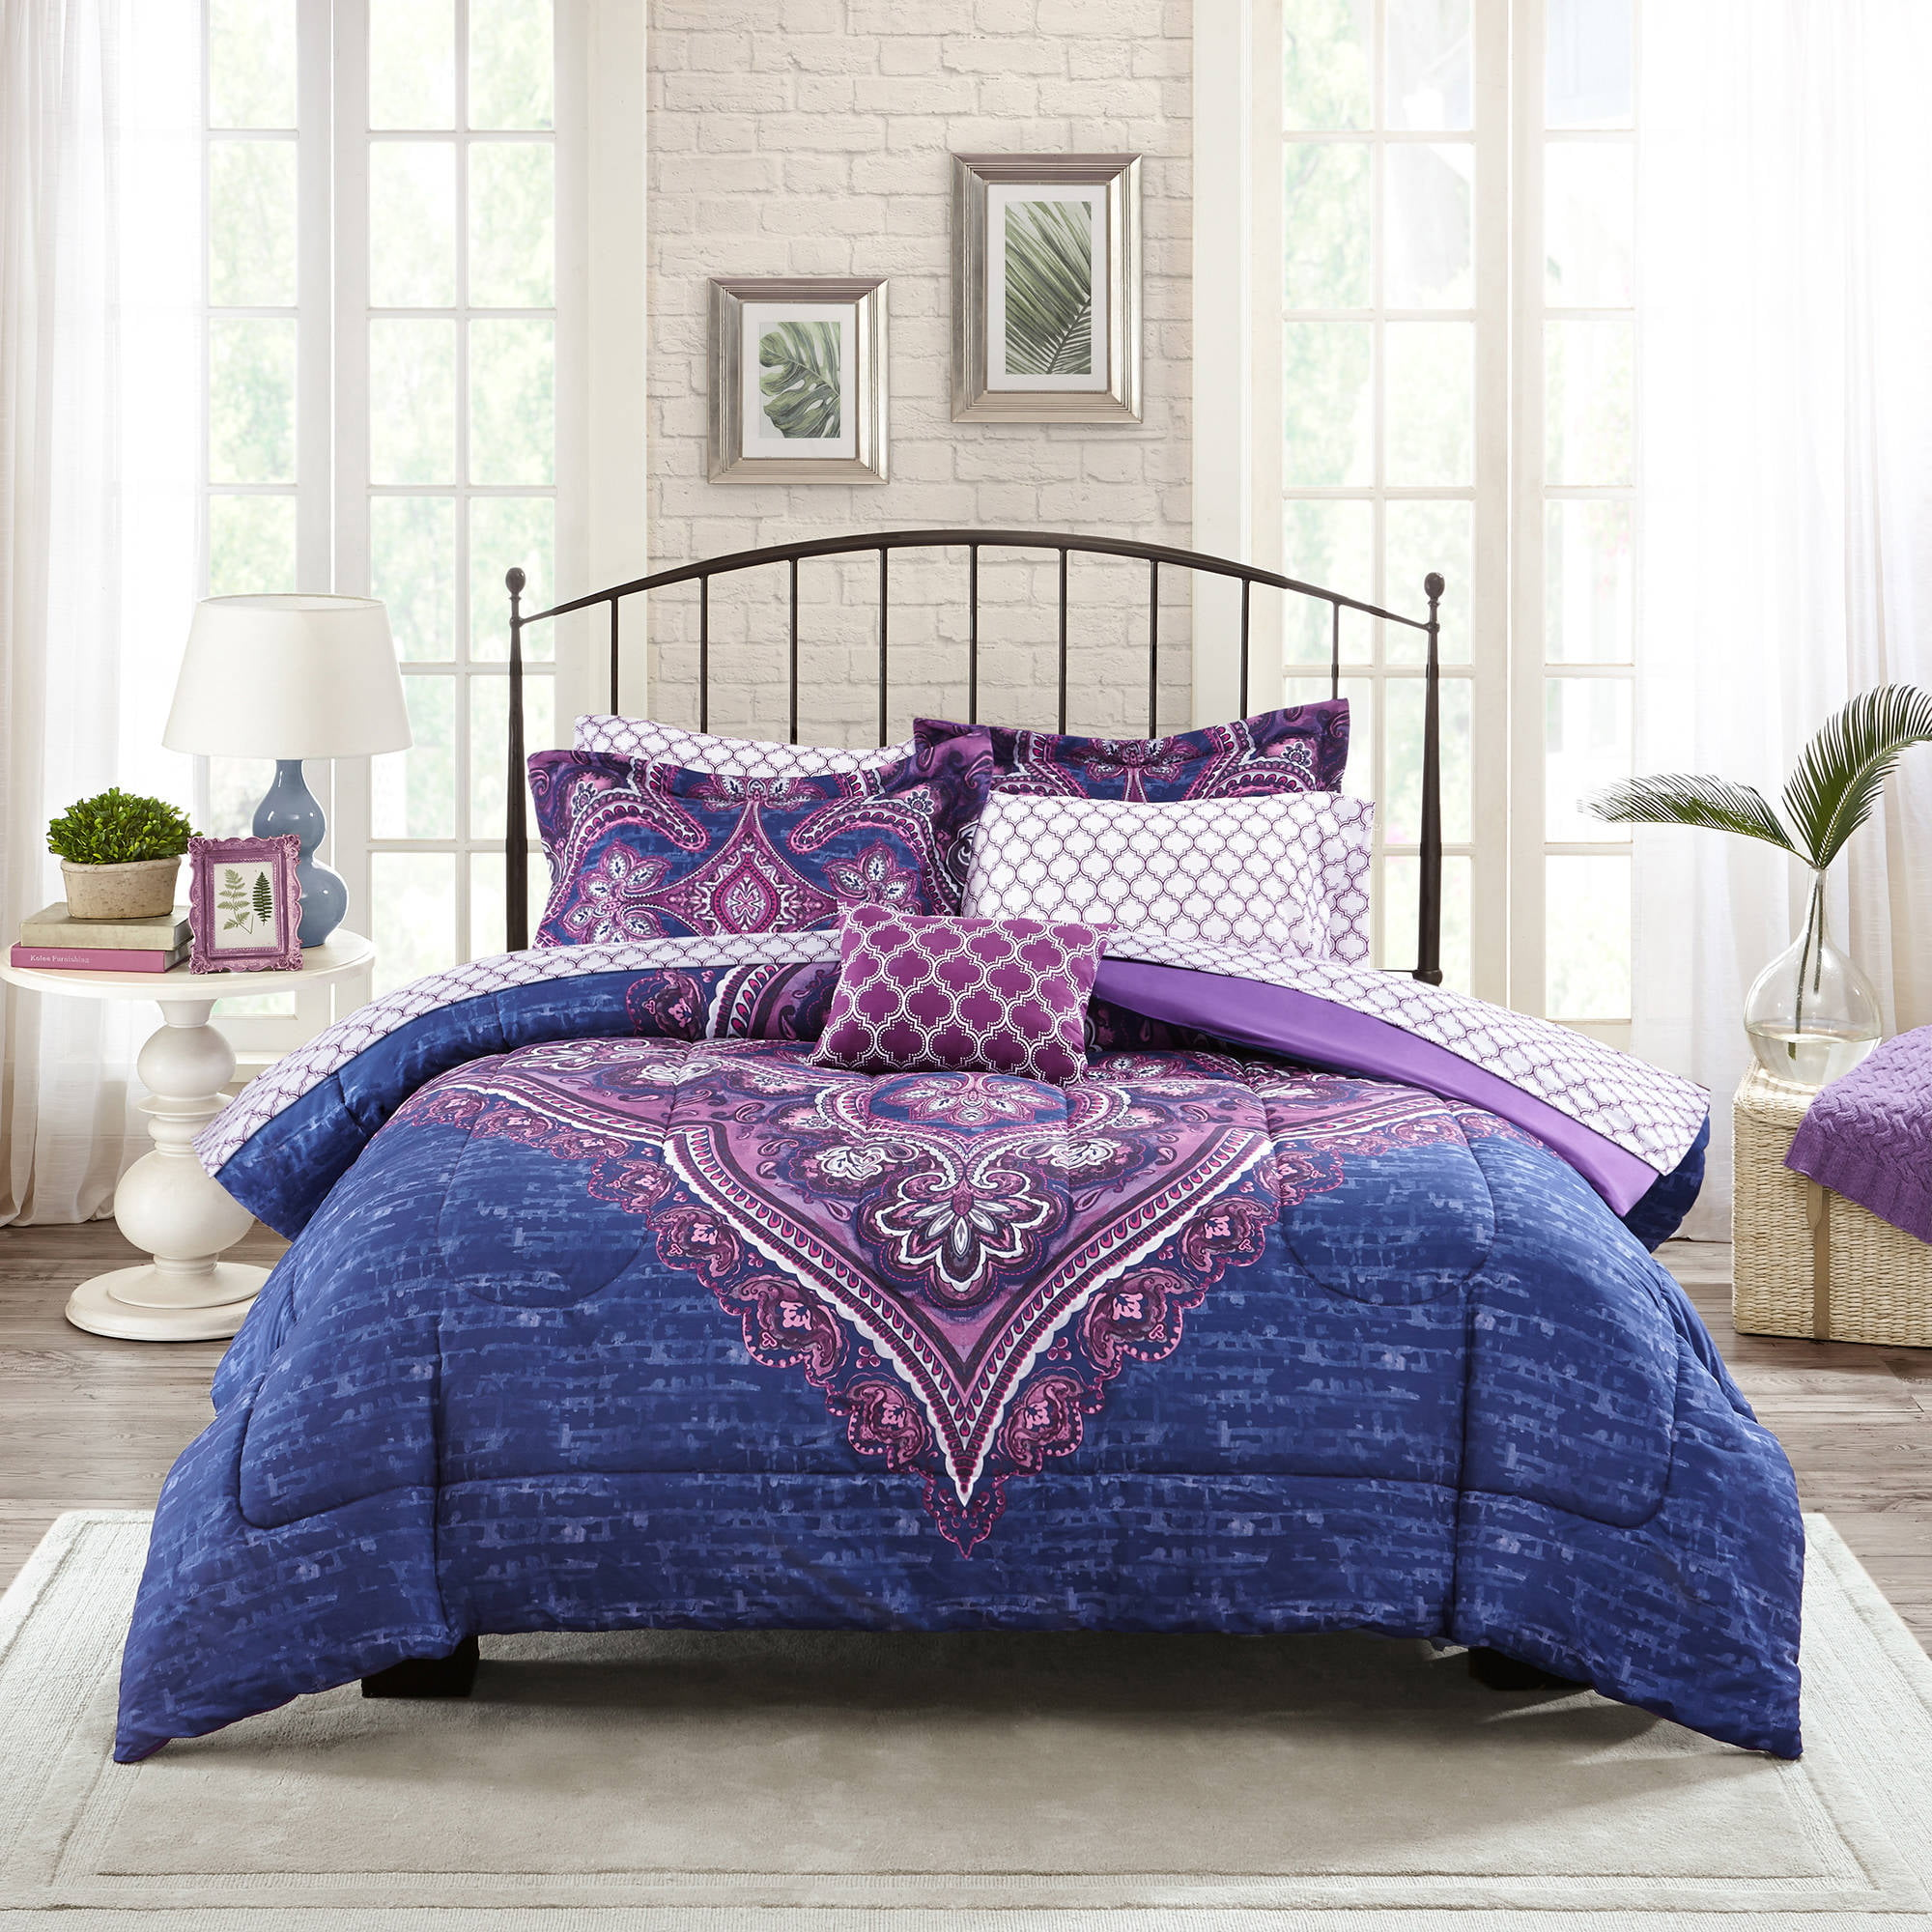 Latitude Bright Hearts Bed In A Bag Bedding Set Walmart Com